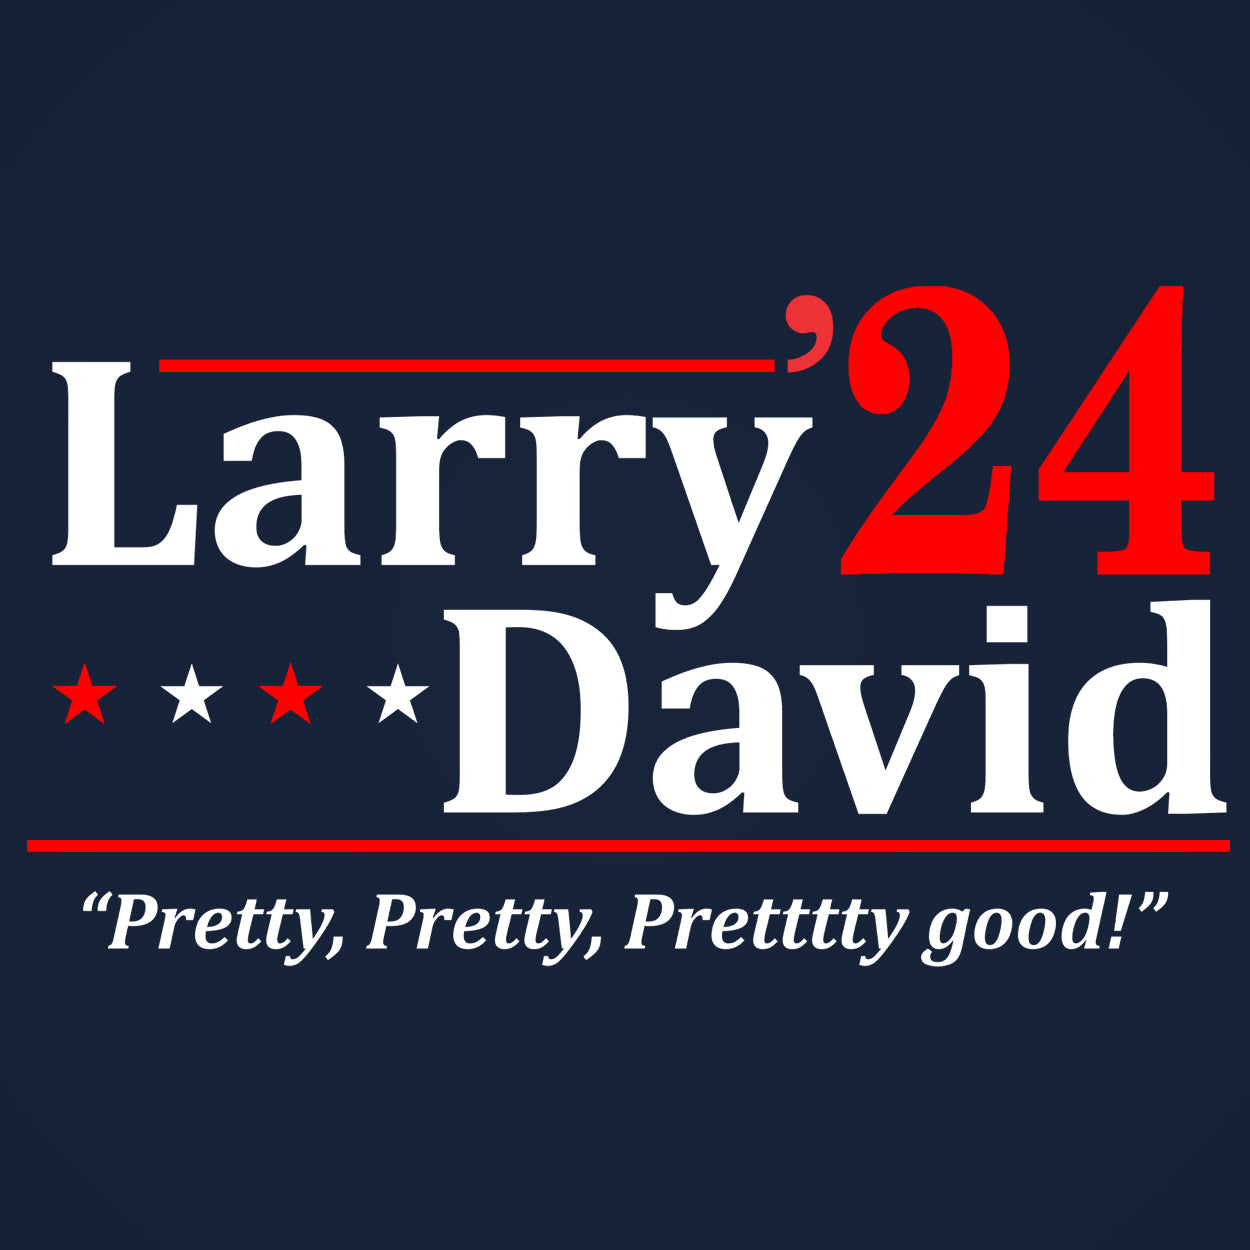 Larry David 2020 ELECTION - DonkeyTees